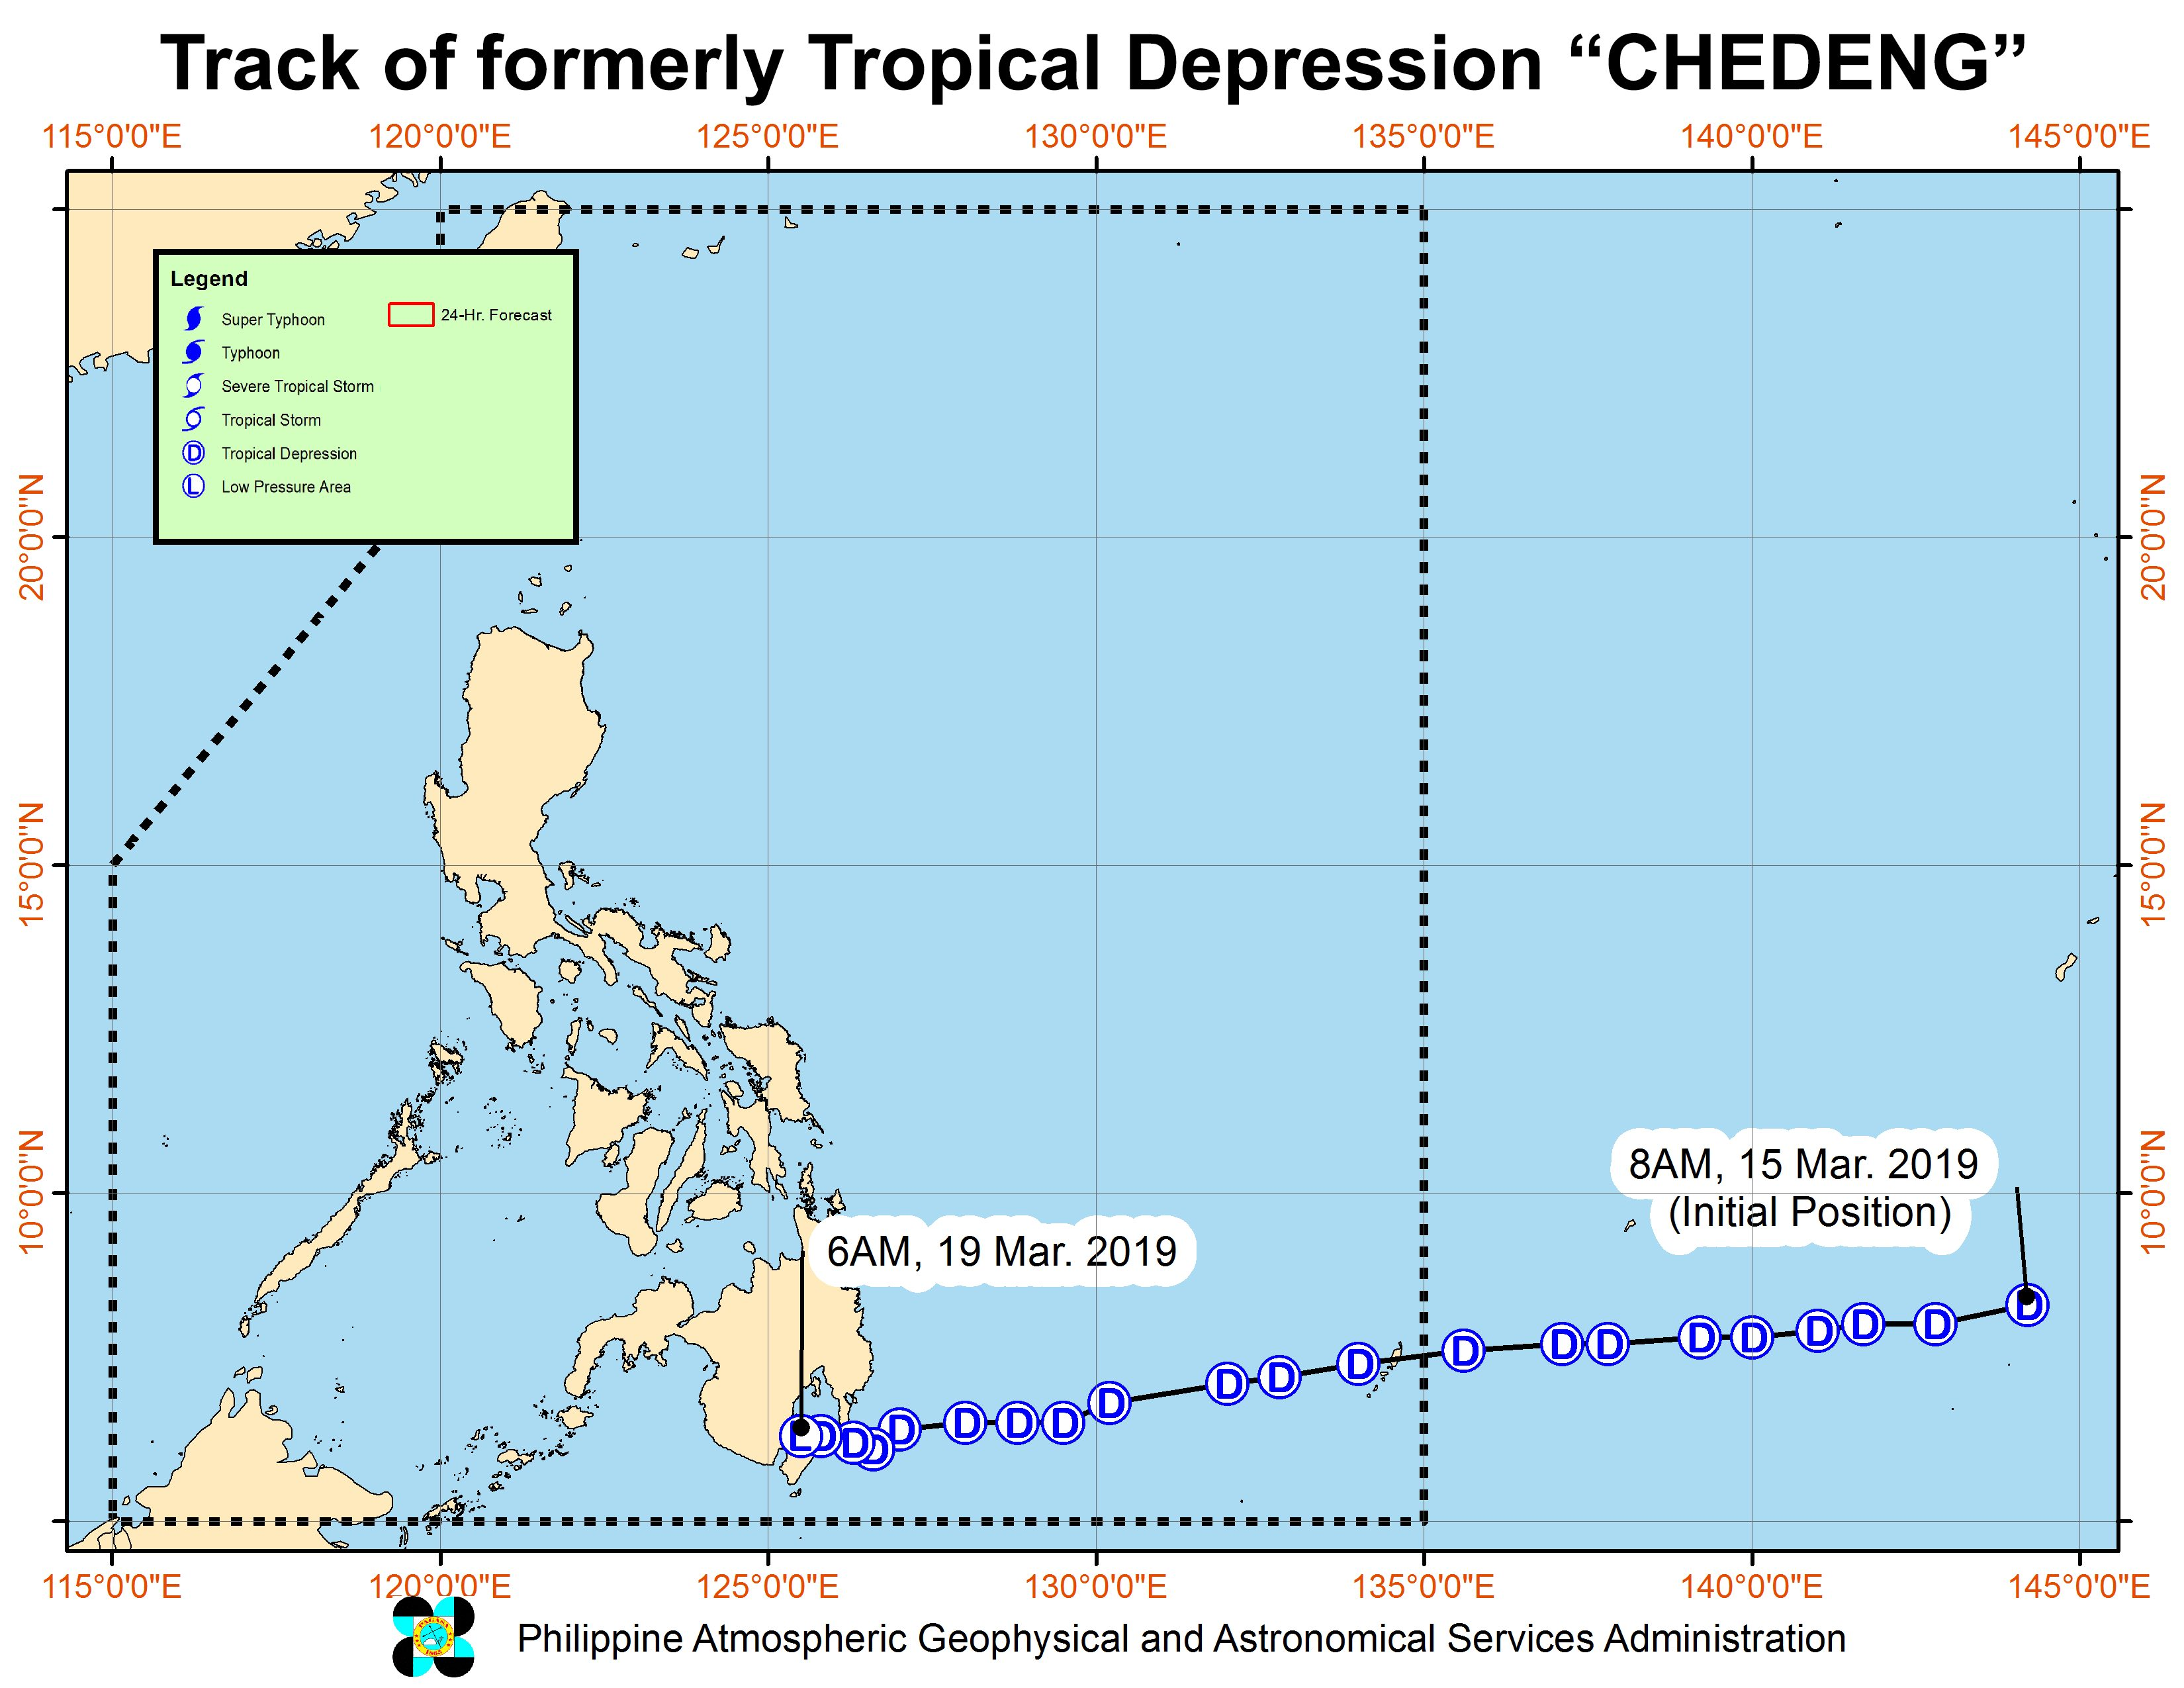 Forecast track of the low pressure area which used to be Tropical Depression Chedeng, as of March 19, 2019, 8 am. Image from PAGASA